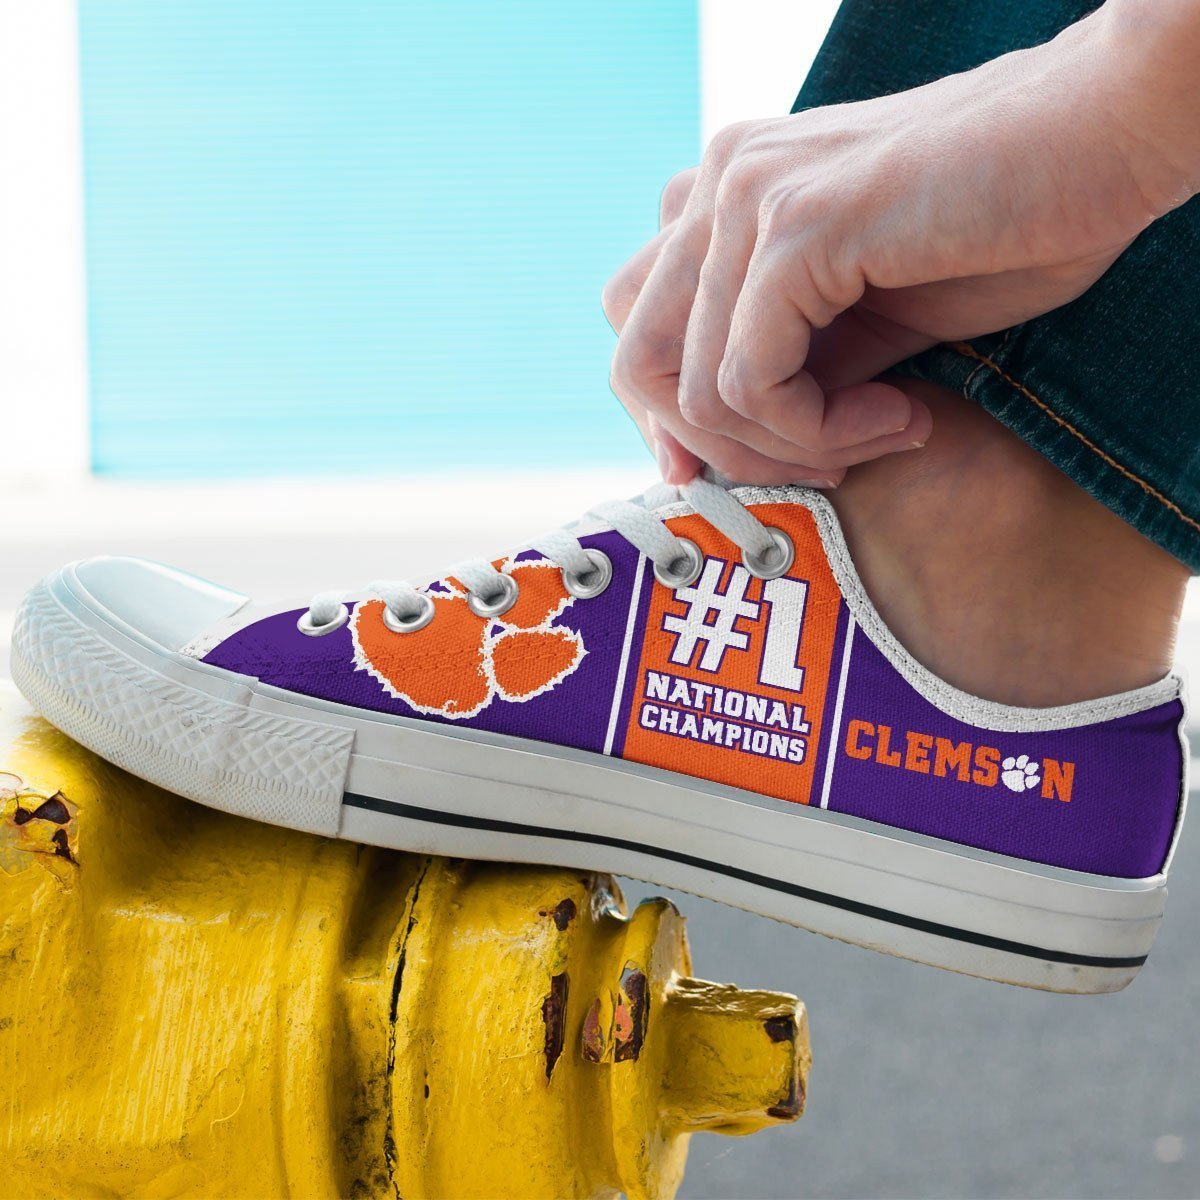 clemson tigers national champions mens low cut sneakers cut